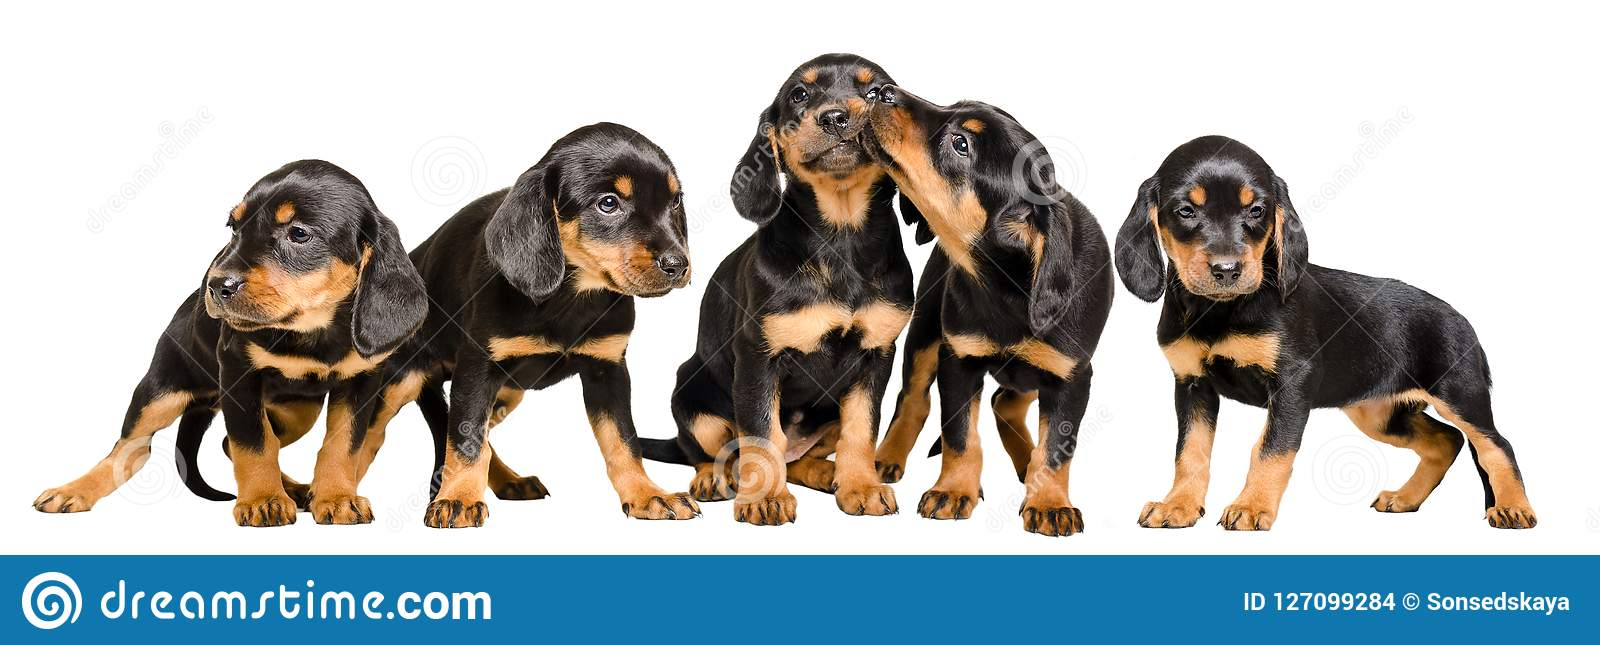 Five cute puppies together